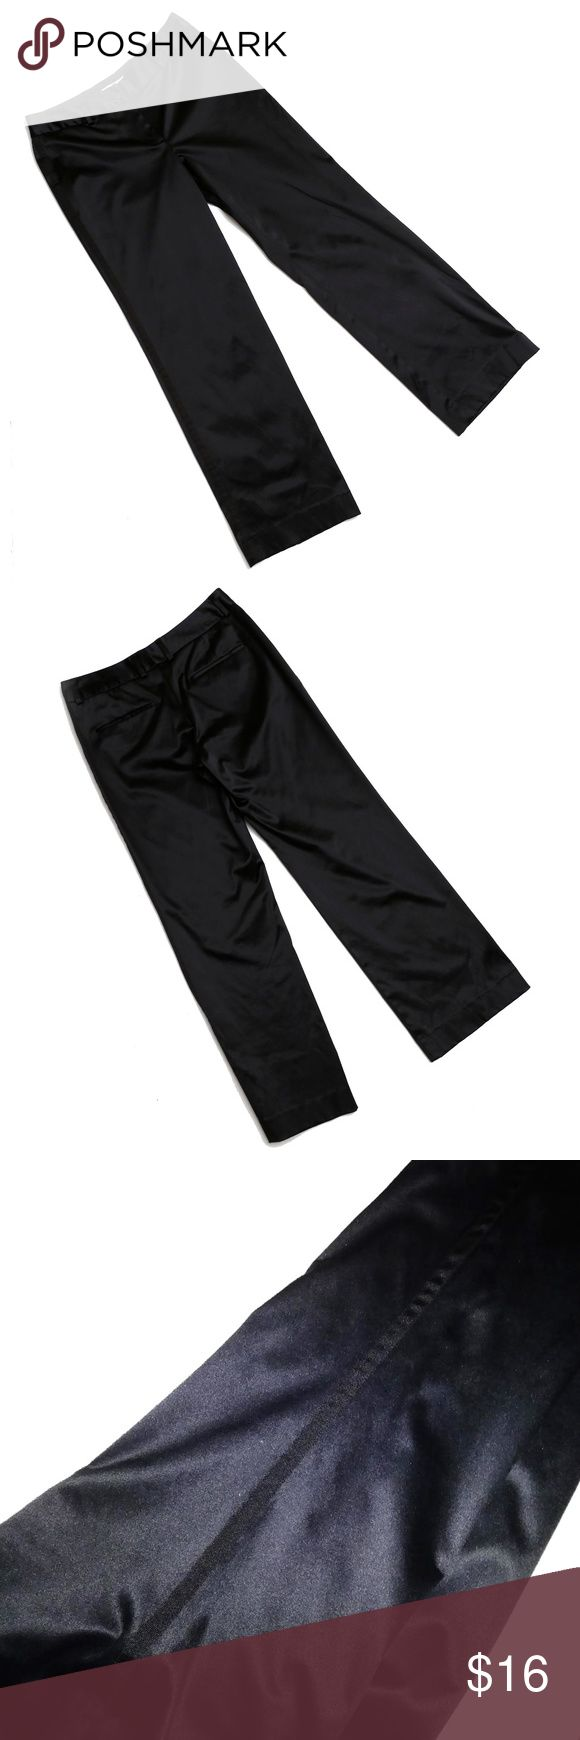 """Isaac Mizrahi for Target - Black Satin Tuxedo Pant Classic satin tuxedo stripe pants by Isaac Mizrahi for Target.  Back welt pockets still have the stitching in them to hold them closed, but they are real pockets.  No front pockets for a smooth look.  Grosgrain ribbon down each leg on the side for a classic tuxedo look.  Zip fly and button front with belt loops around the waistband.  Approximate measurements:  32"""" around waistband/30.5"""" inseam/9.5"""" rise from crotch seam to top of waistband…"""